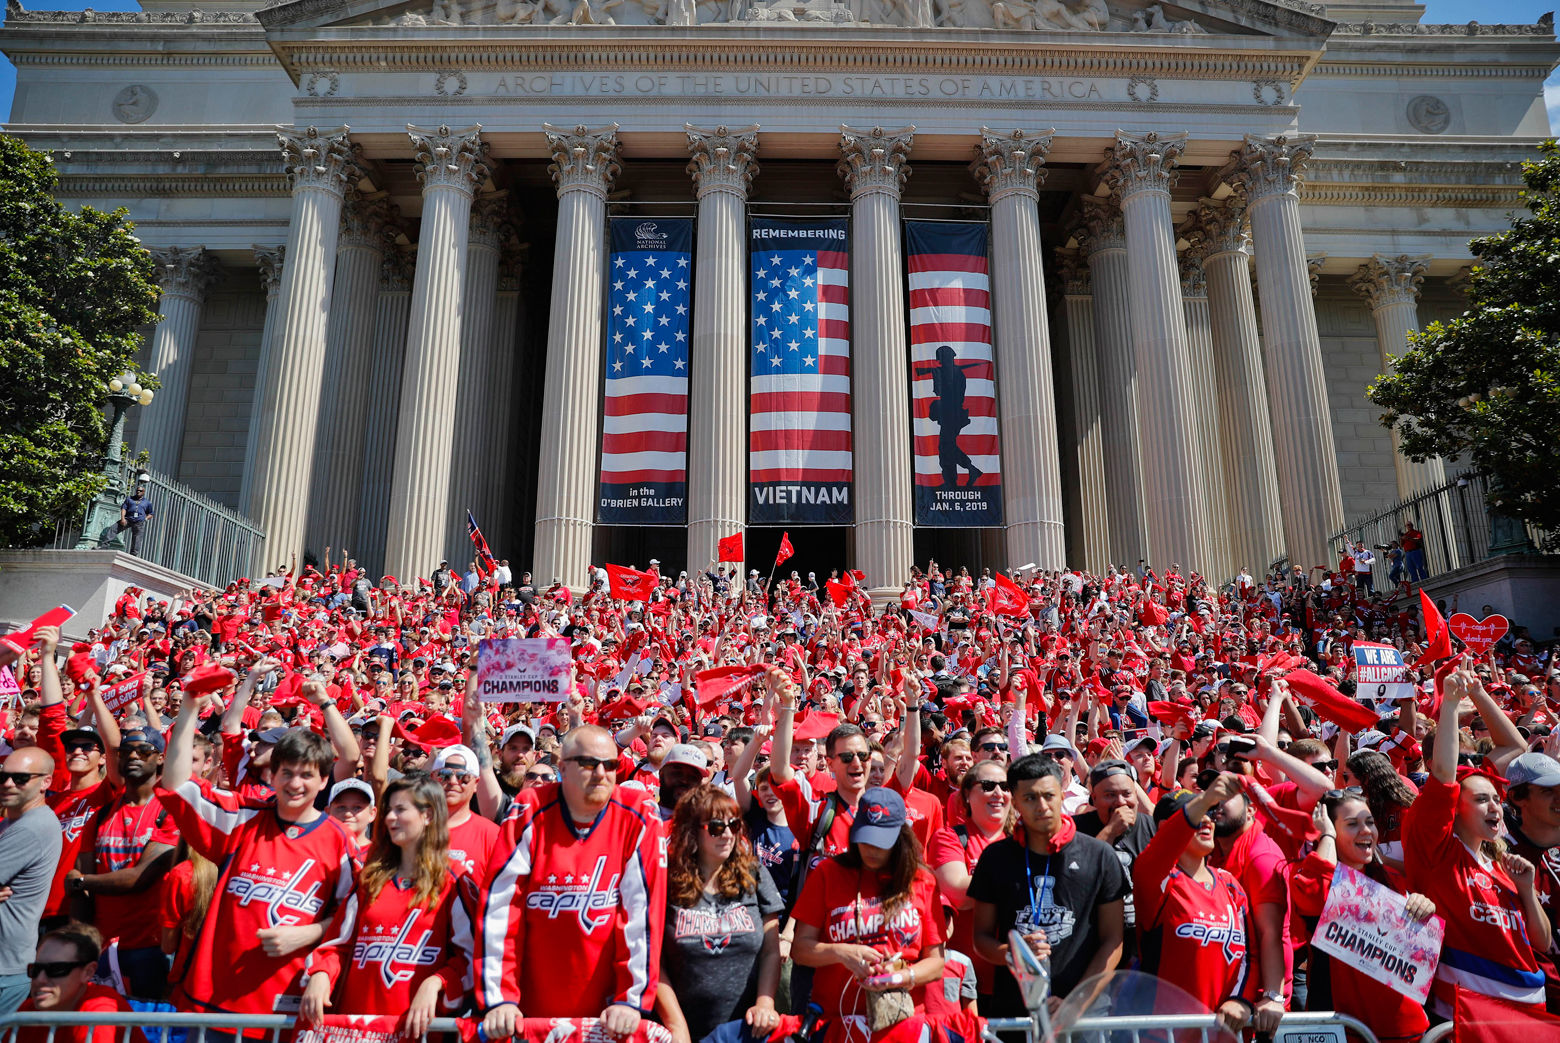 Fans gather on the steps of the National Archives Building as they wait to watch the Capitals parade along the National Mall. (AP Photo/Pablo Martinez Monsivais)